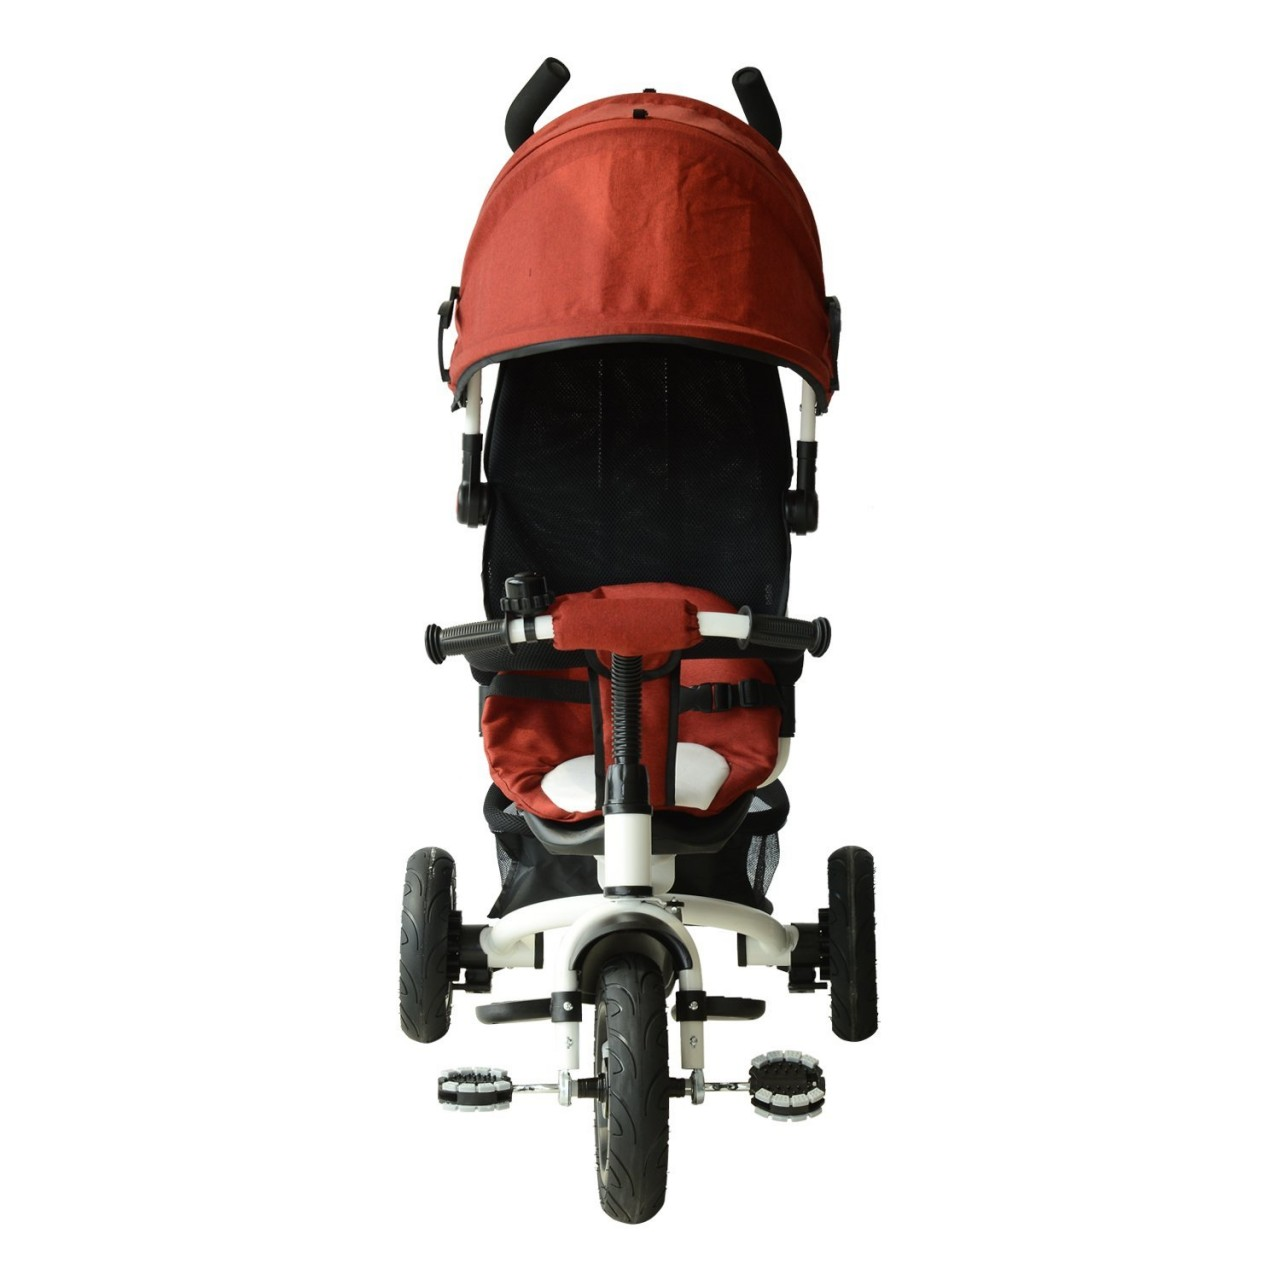 Carrinho de Beb? Triciclo Qaba 2-in-1 Lightweight Convertible Tricycle Baby Stroller - Red